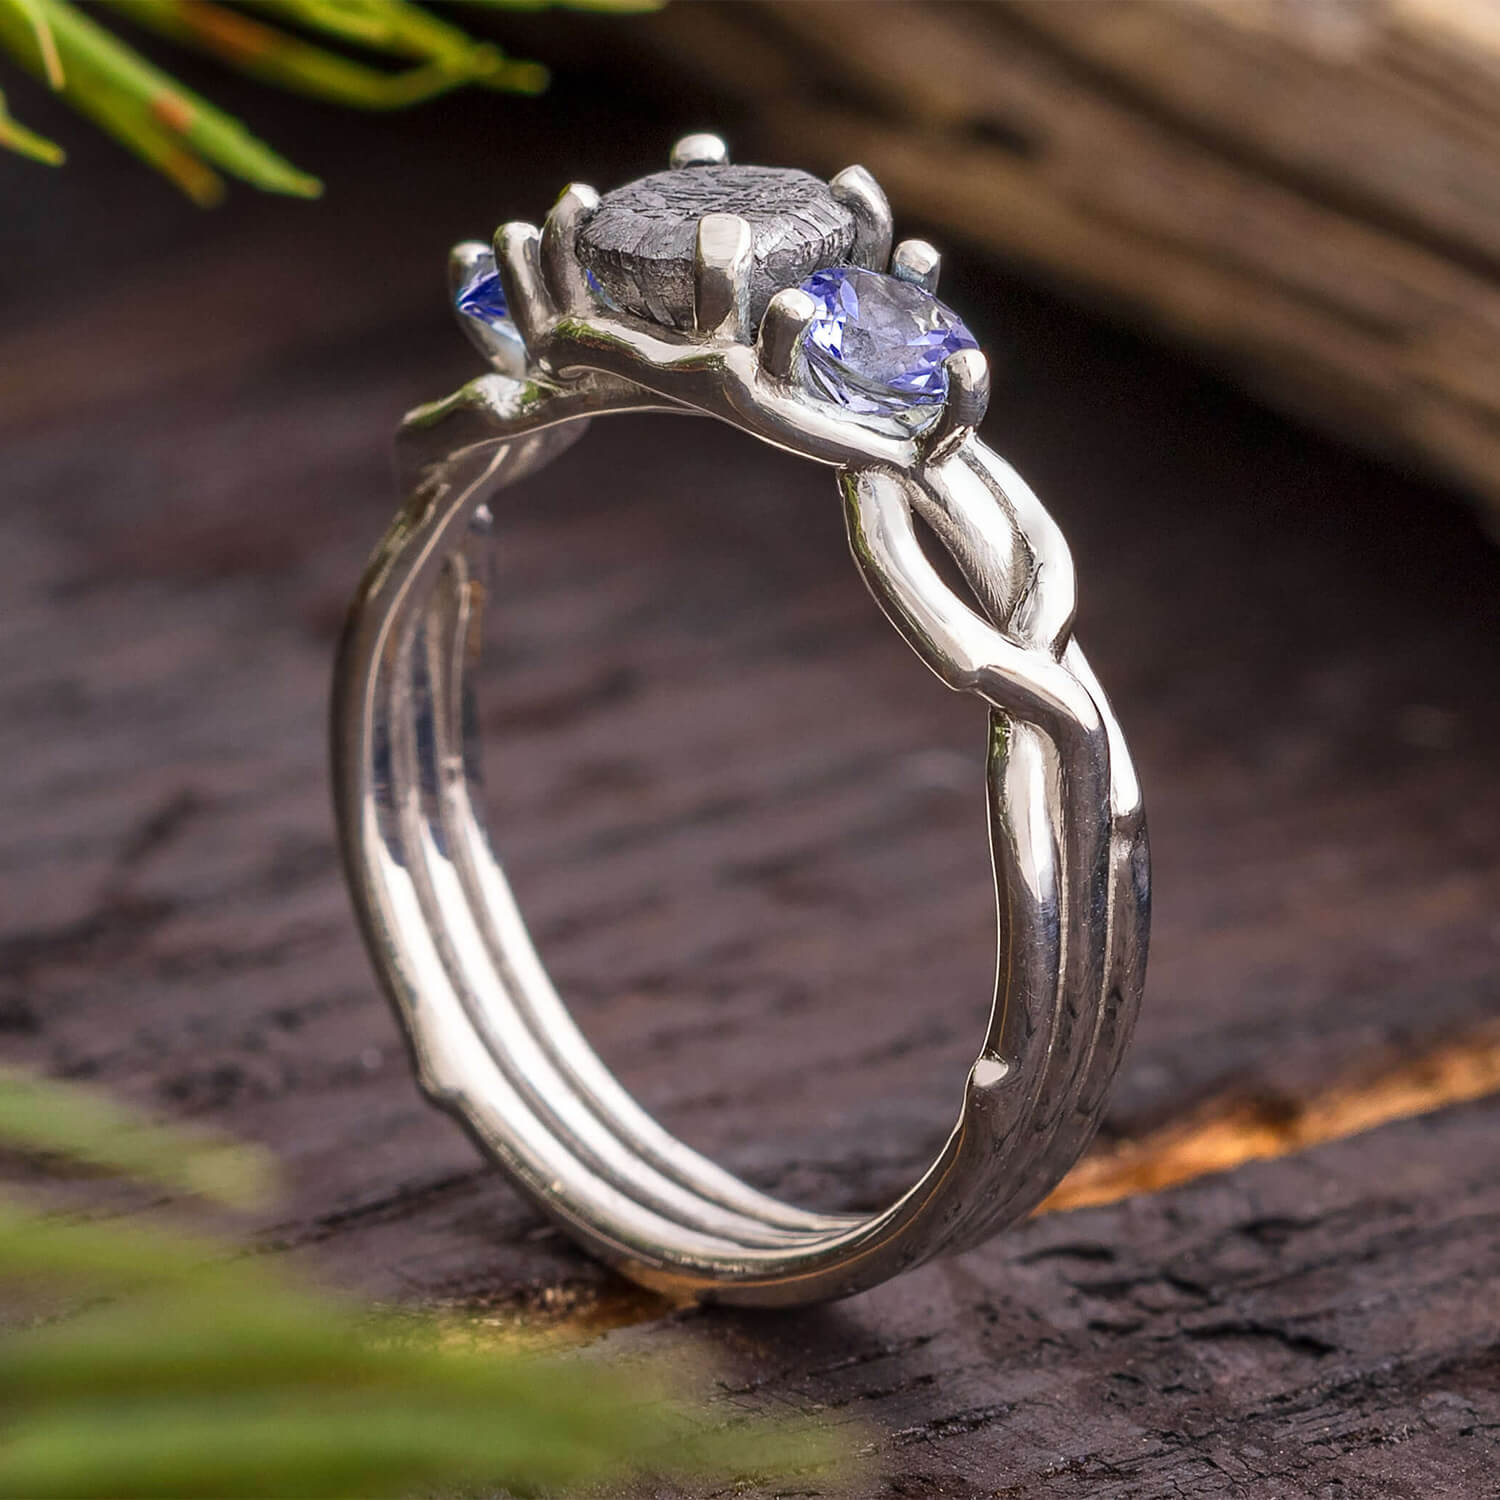 Tanzanite Ring With Meteorite Stone-SIG3049 - Jewelry by Johan